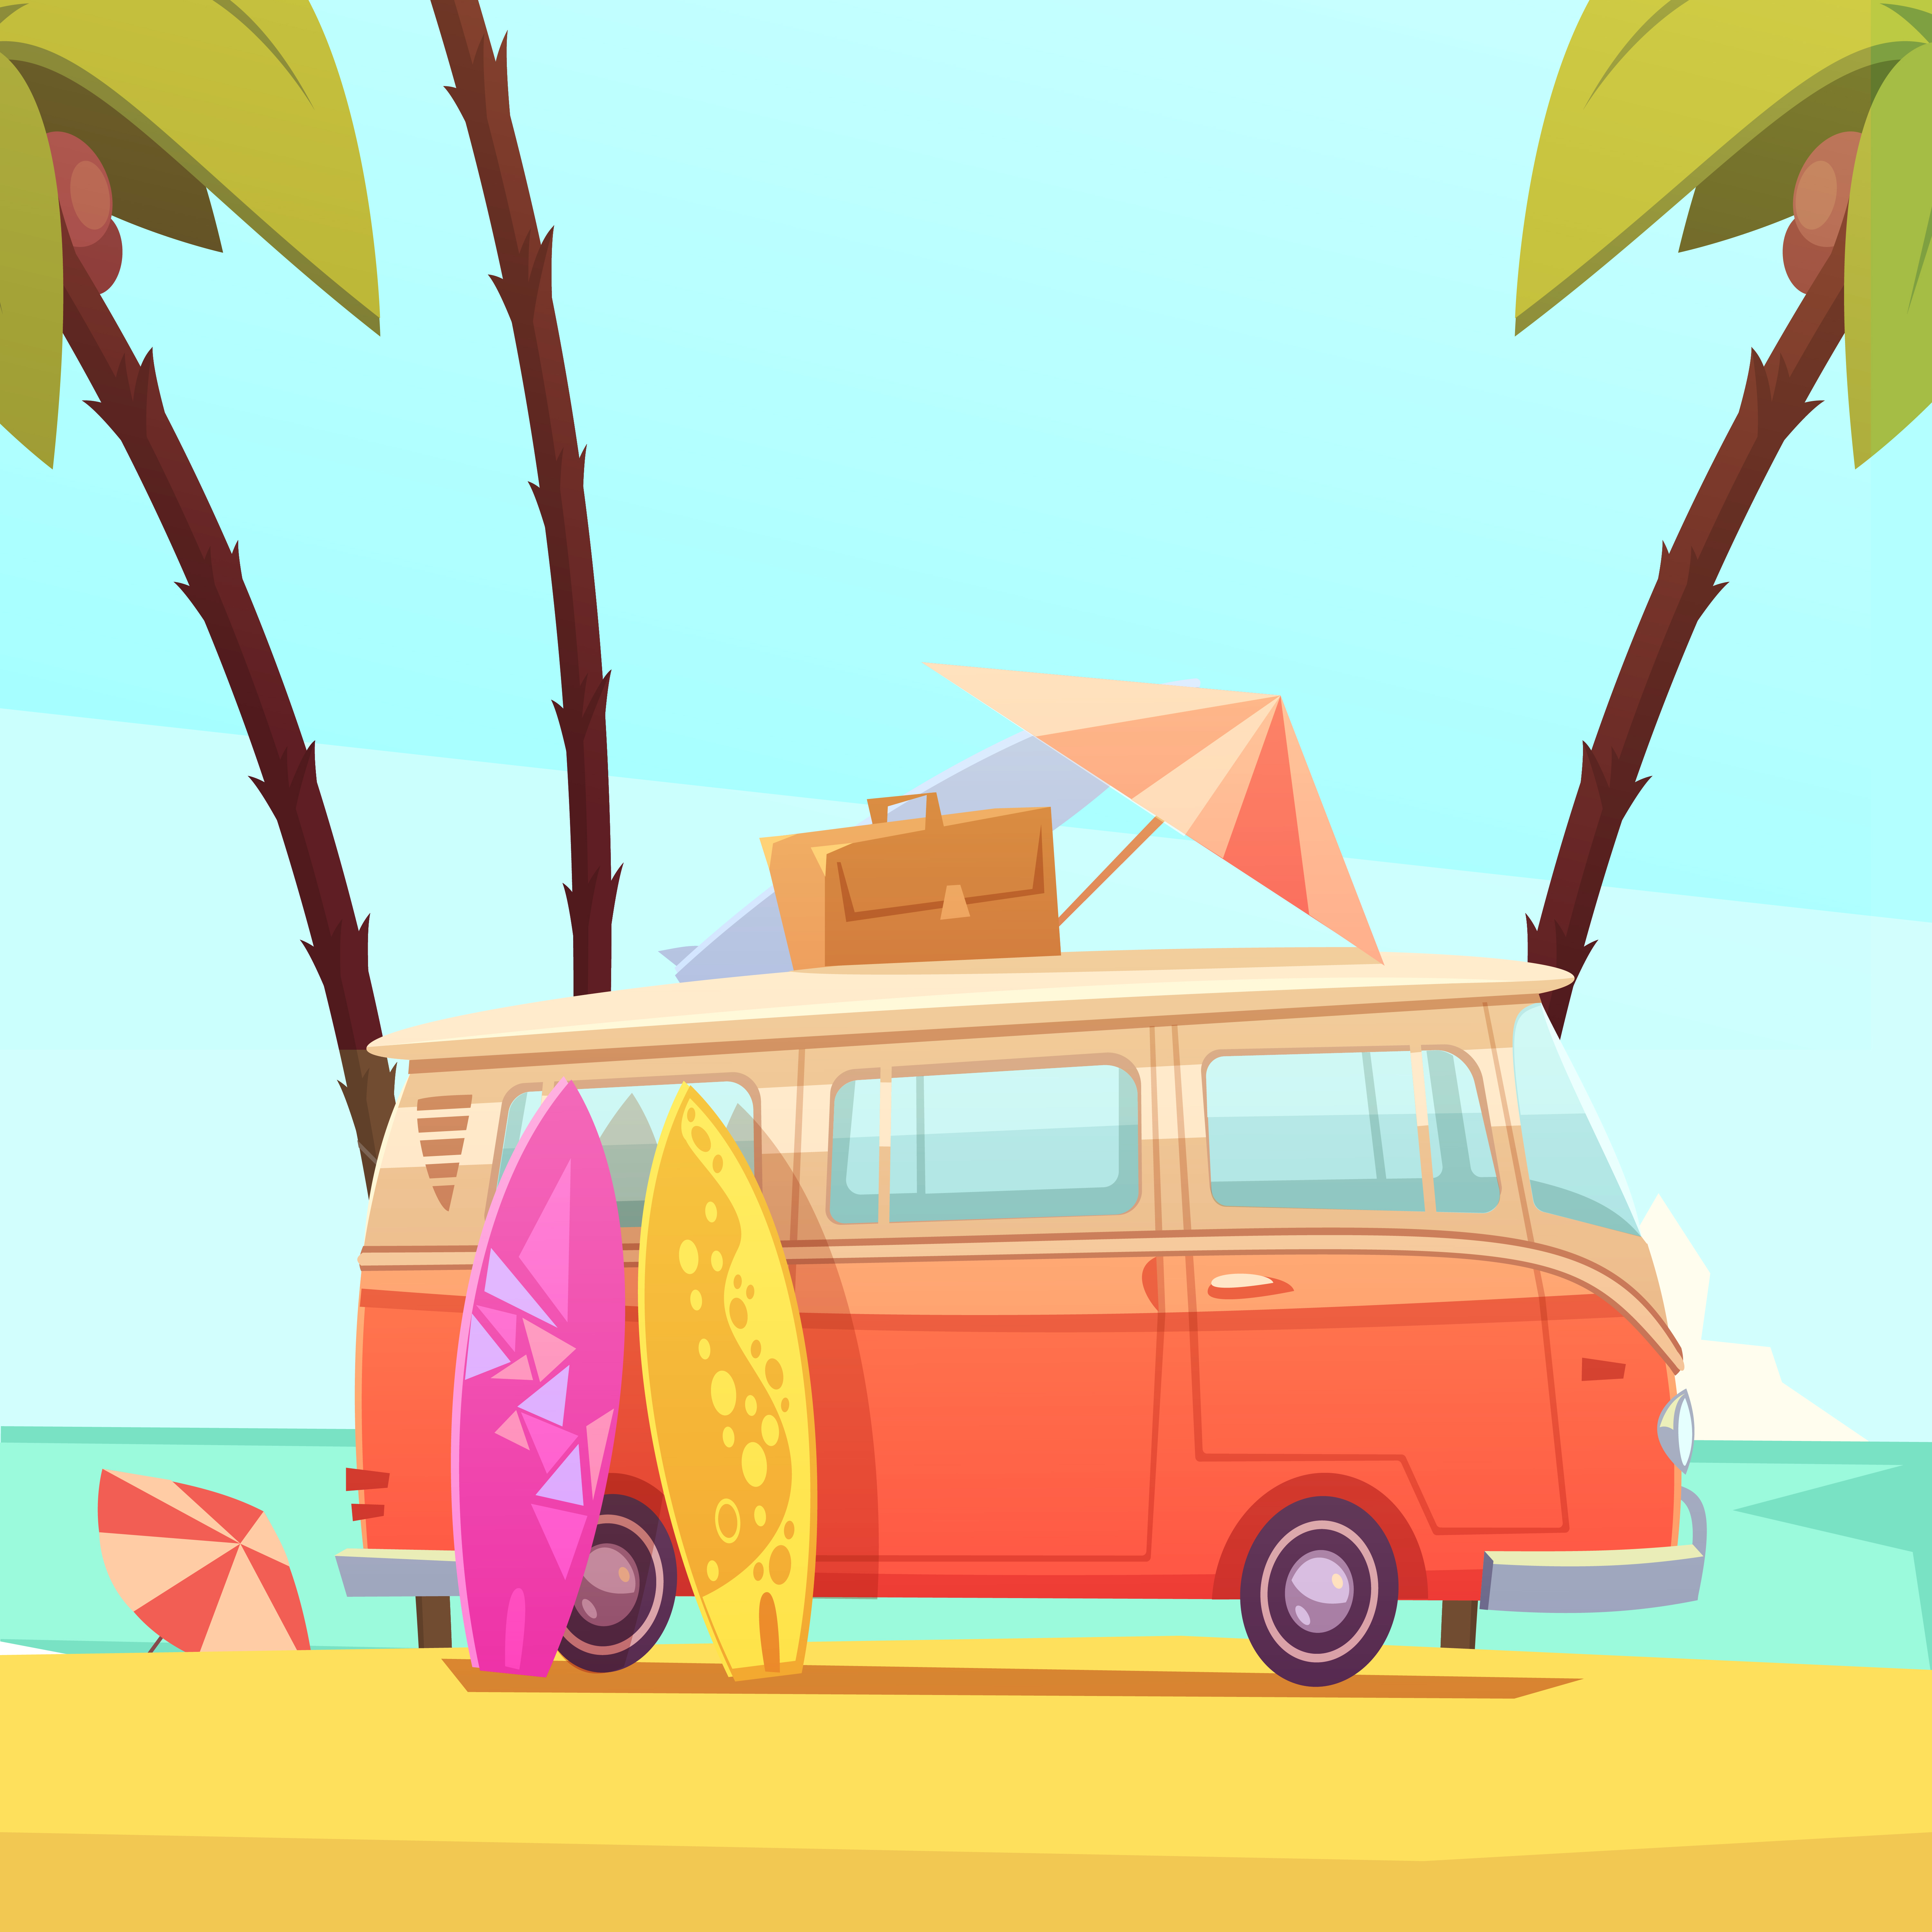 Surfing And Bus Retro Cartoon Illustration - Download Free ...